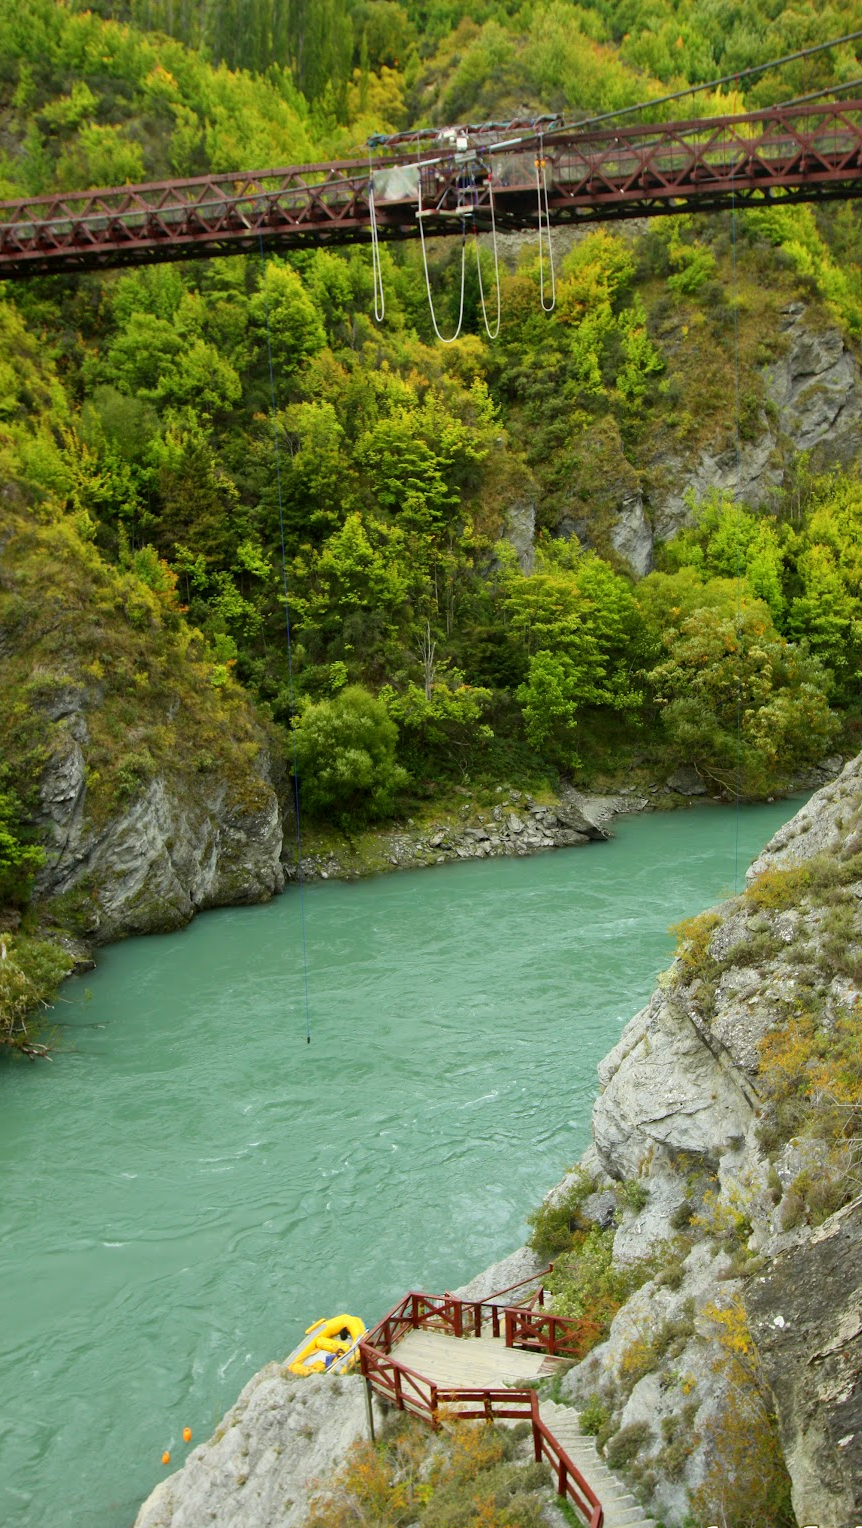 The Kawarau Bridge Bungy (bungee) is the World Home of Bungy Jumping. IT ALL BEGAN IN NOVEMBER 1988, WHEN TWO GREAT MATES HAD A CRAZY IDEA TO THROW THEMSELVES OFF THE KAWARAU BRIDGE, (QUEENSTOWN, NZ) ATTACHED ONLY BY A BUNGY CORD. OVER 25 YEARS LATER, AJ HACKETT BUNGY NZ IS STILL DELIVERING ADRENALIN FUELLED EXPERIENCES, WITH SIX PRODUCTS IN QUEENSTOWN, SUCH AS THE NEVIS BUNGY, NEVIS SWING, LEDGE BUNGY, LEDGE SWING, AND THE ALL NEW KAWARAU ZIPRIDE.